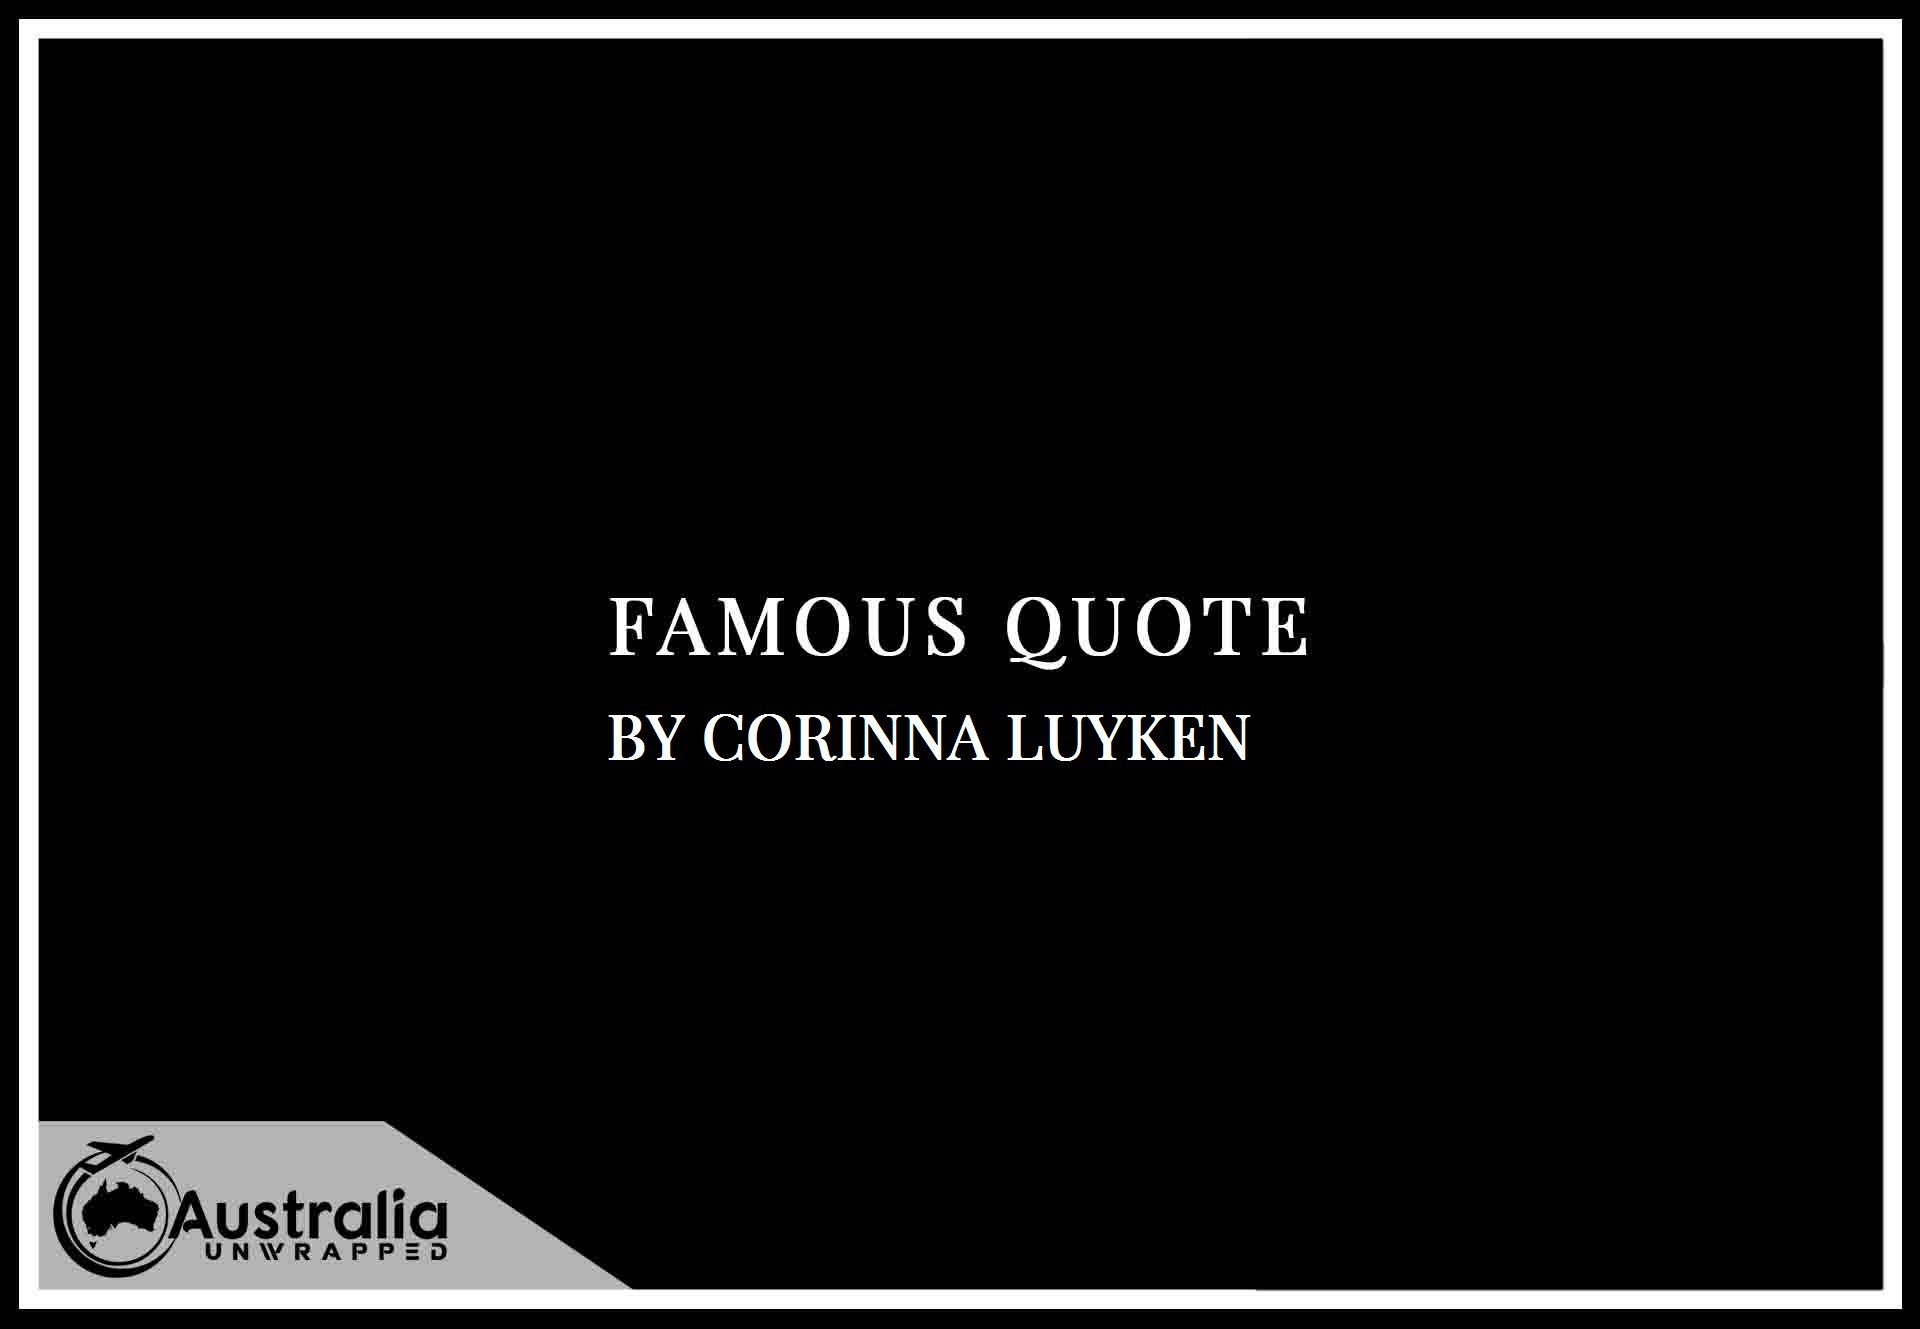 Corinna Luyken's Top 1 Popular and Famous Quotes